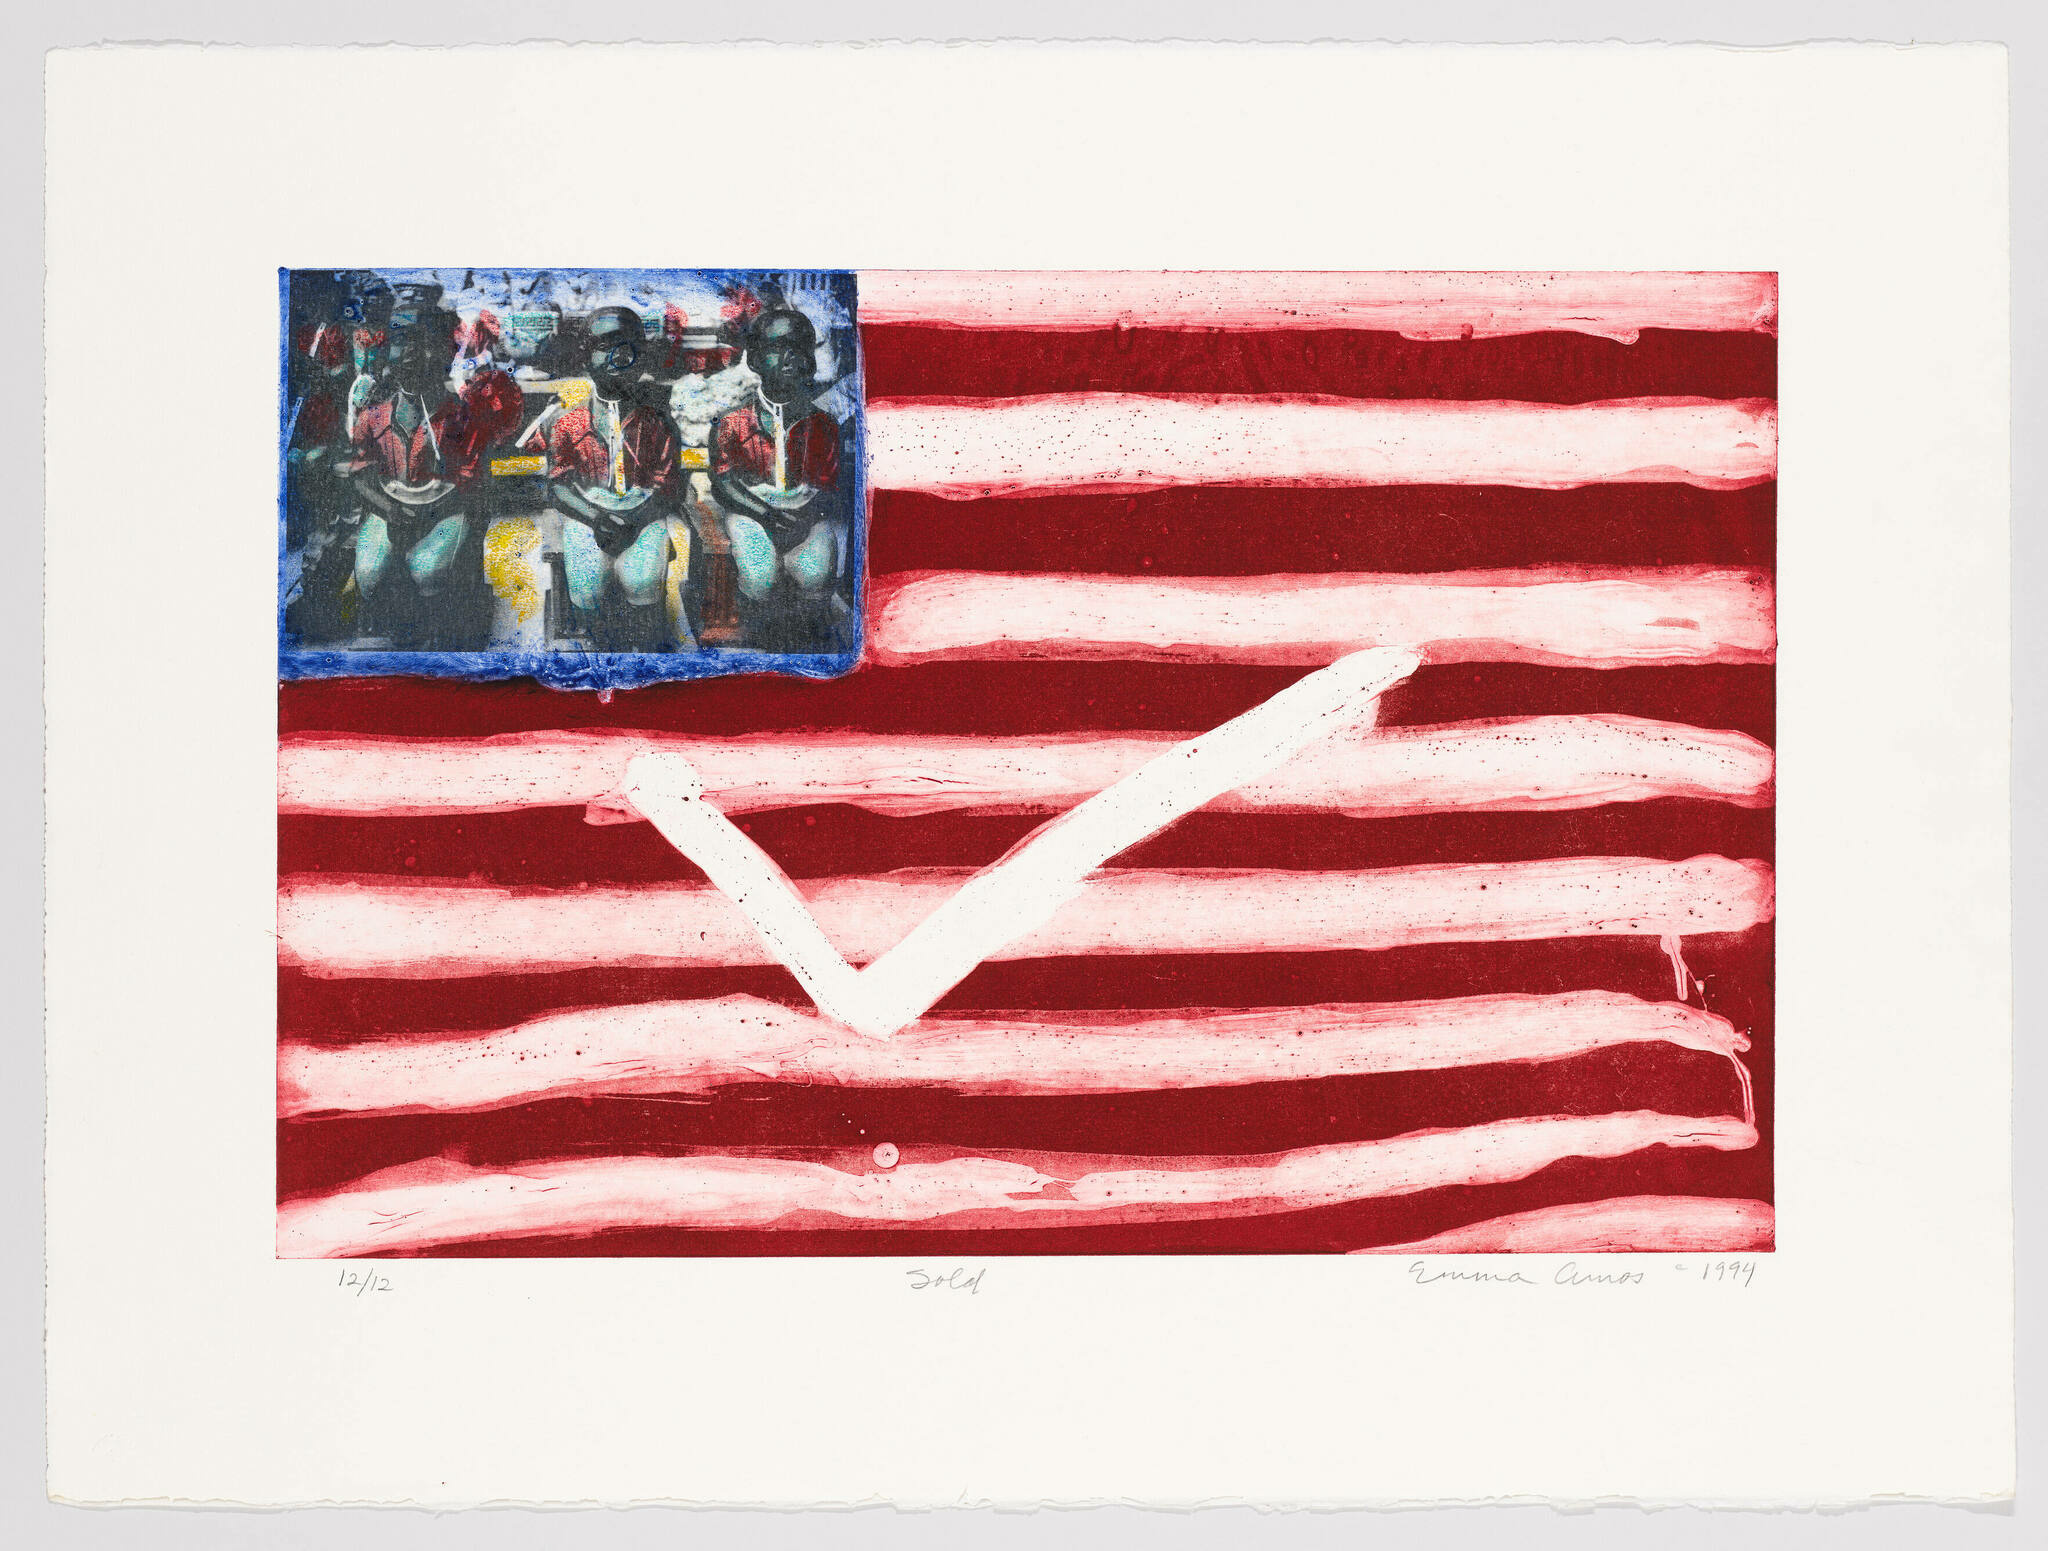 A large white checkmark and line of sitting figures are transposed upon the framework of an American flag